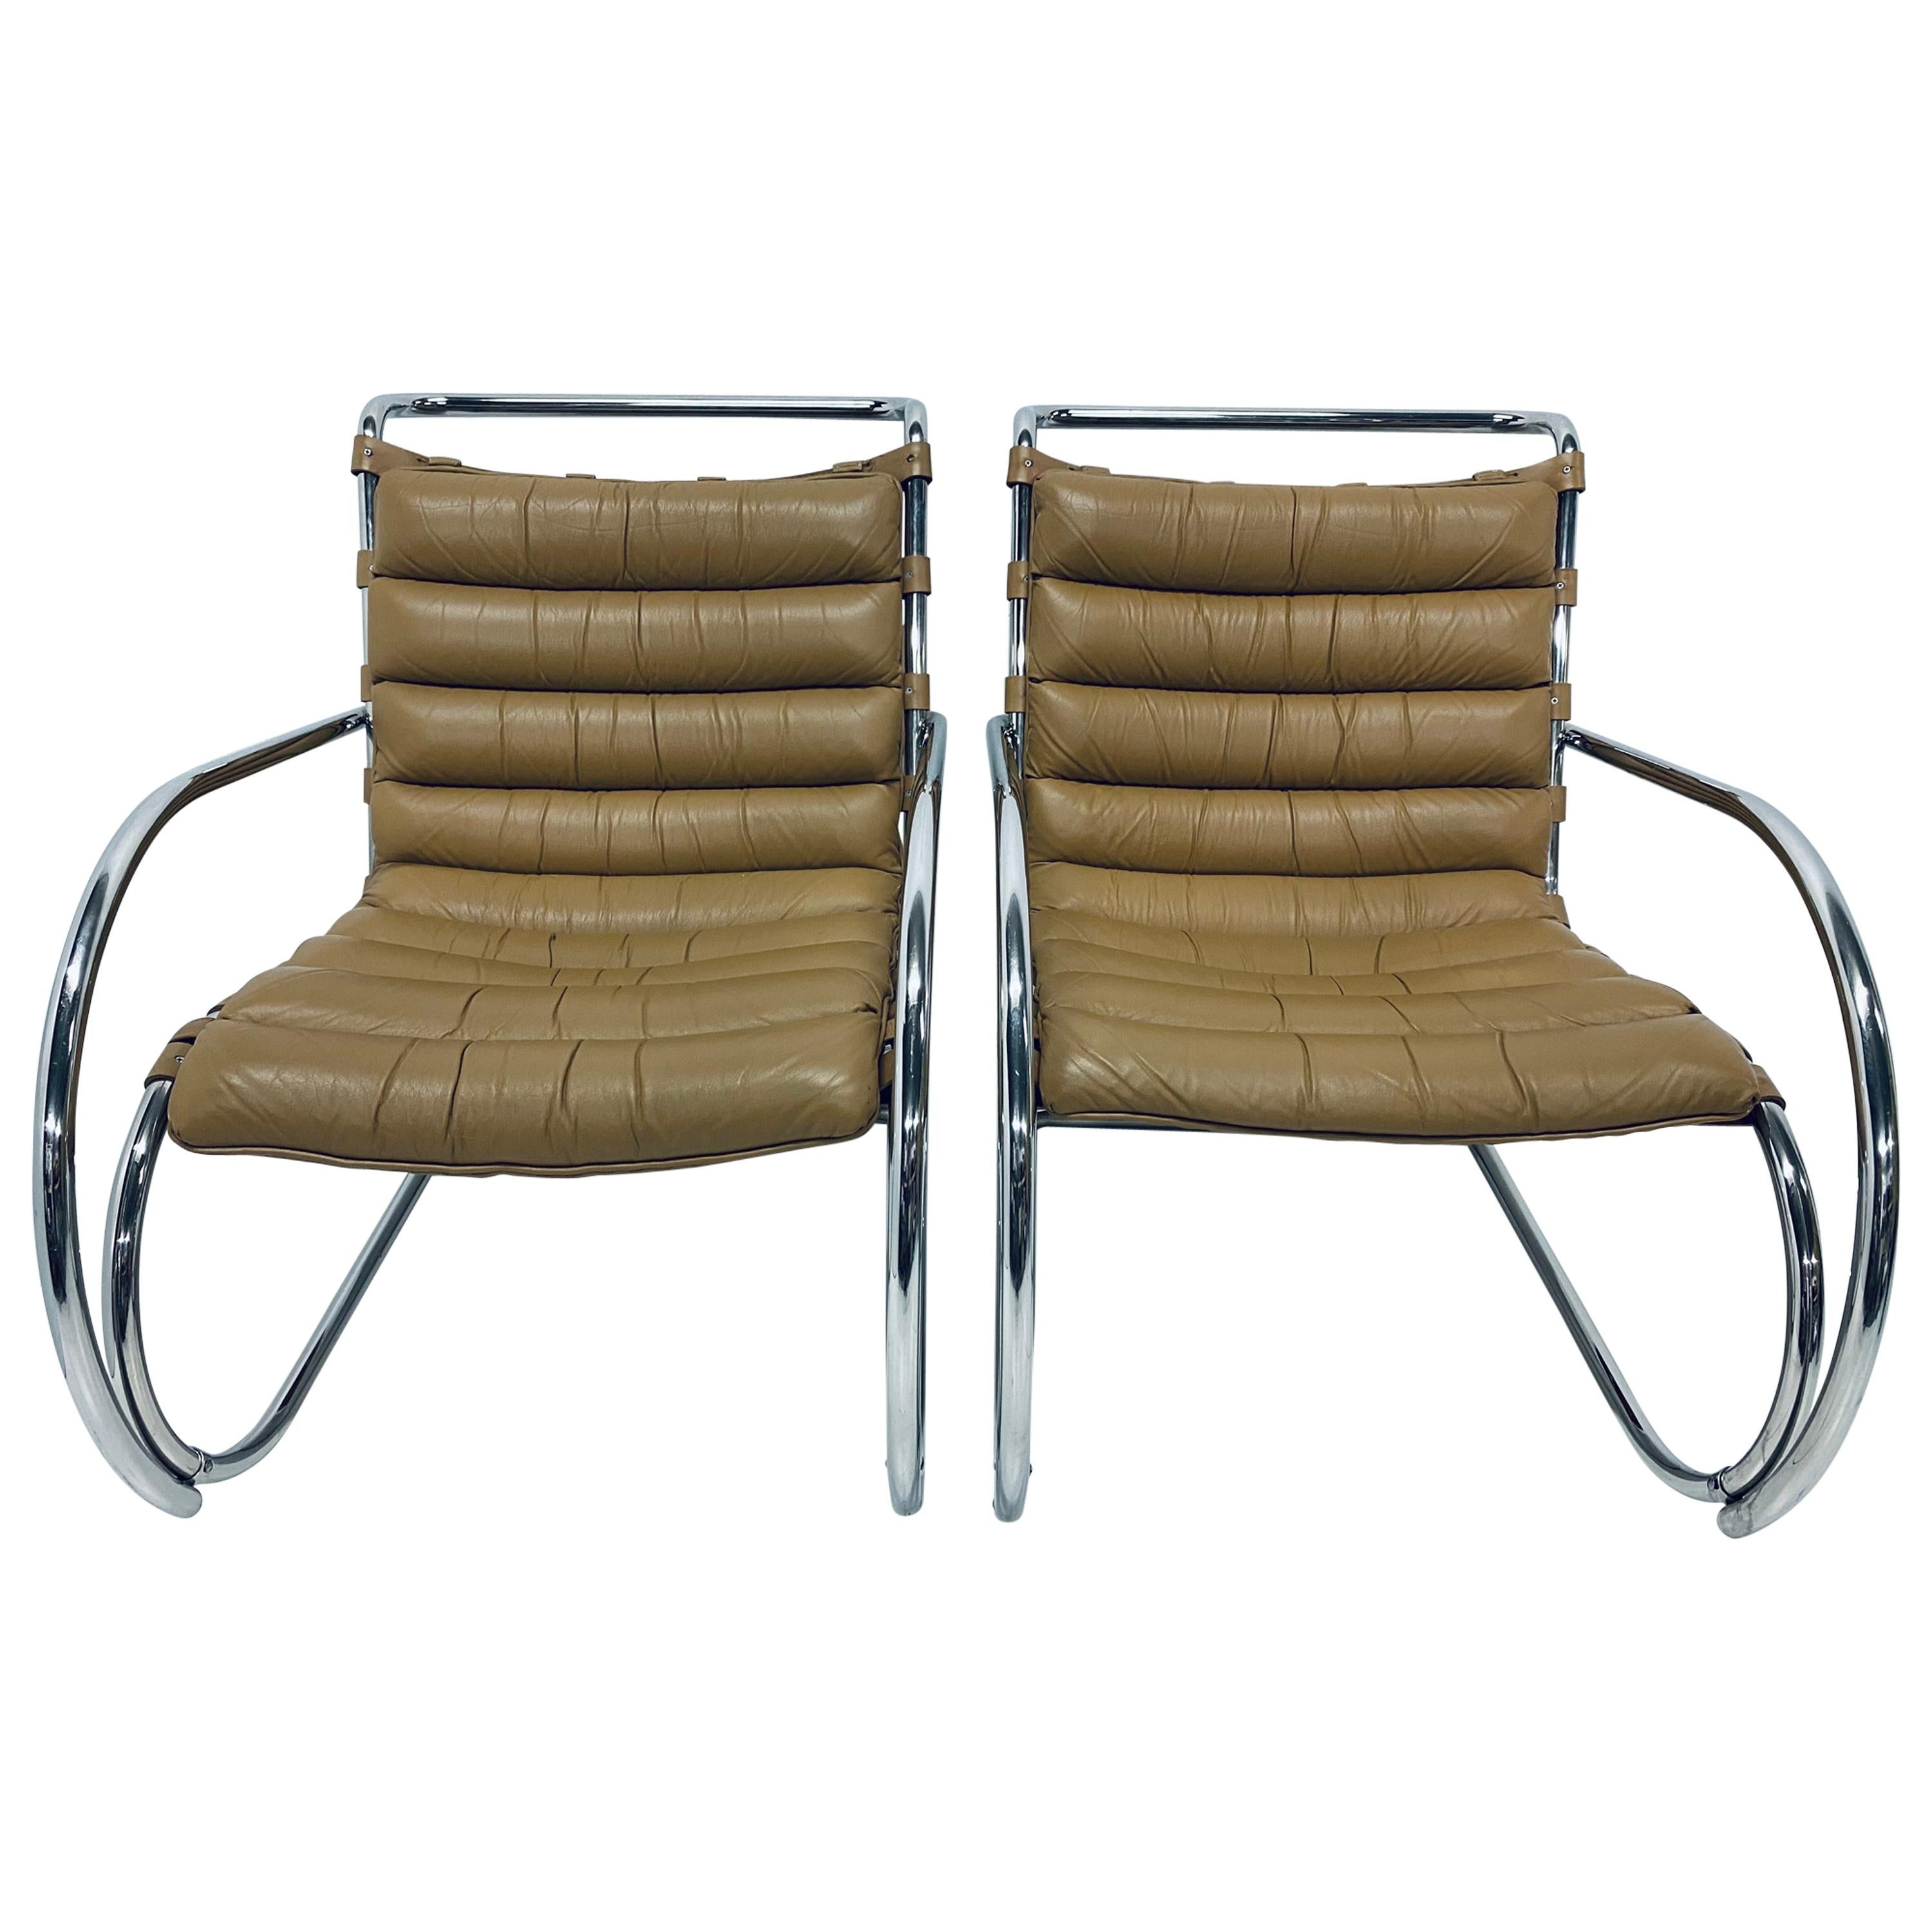 Mies van der Rohe MR Lounge Chairs with Arms by Knoll, a Pair